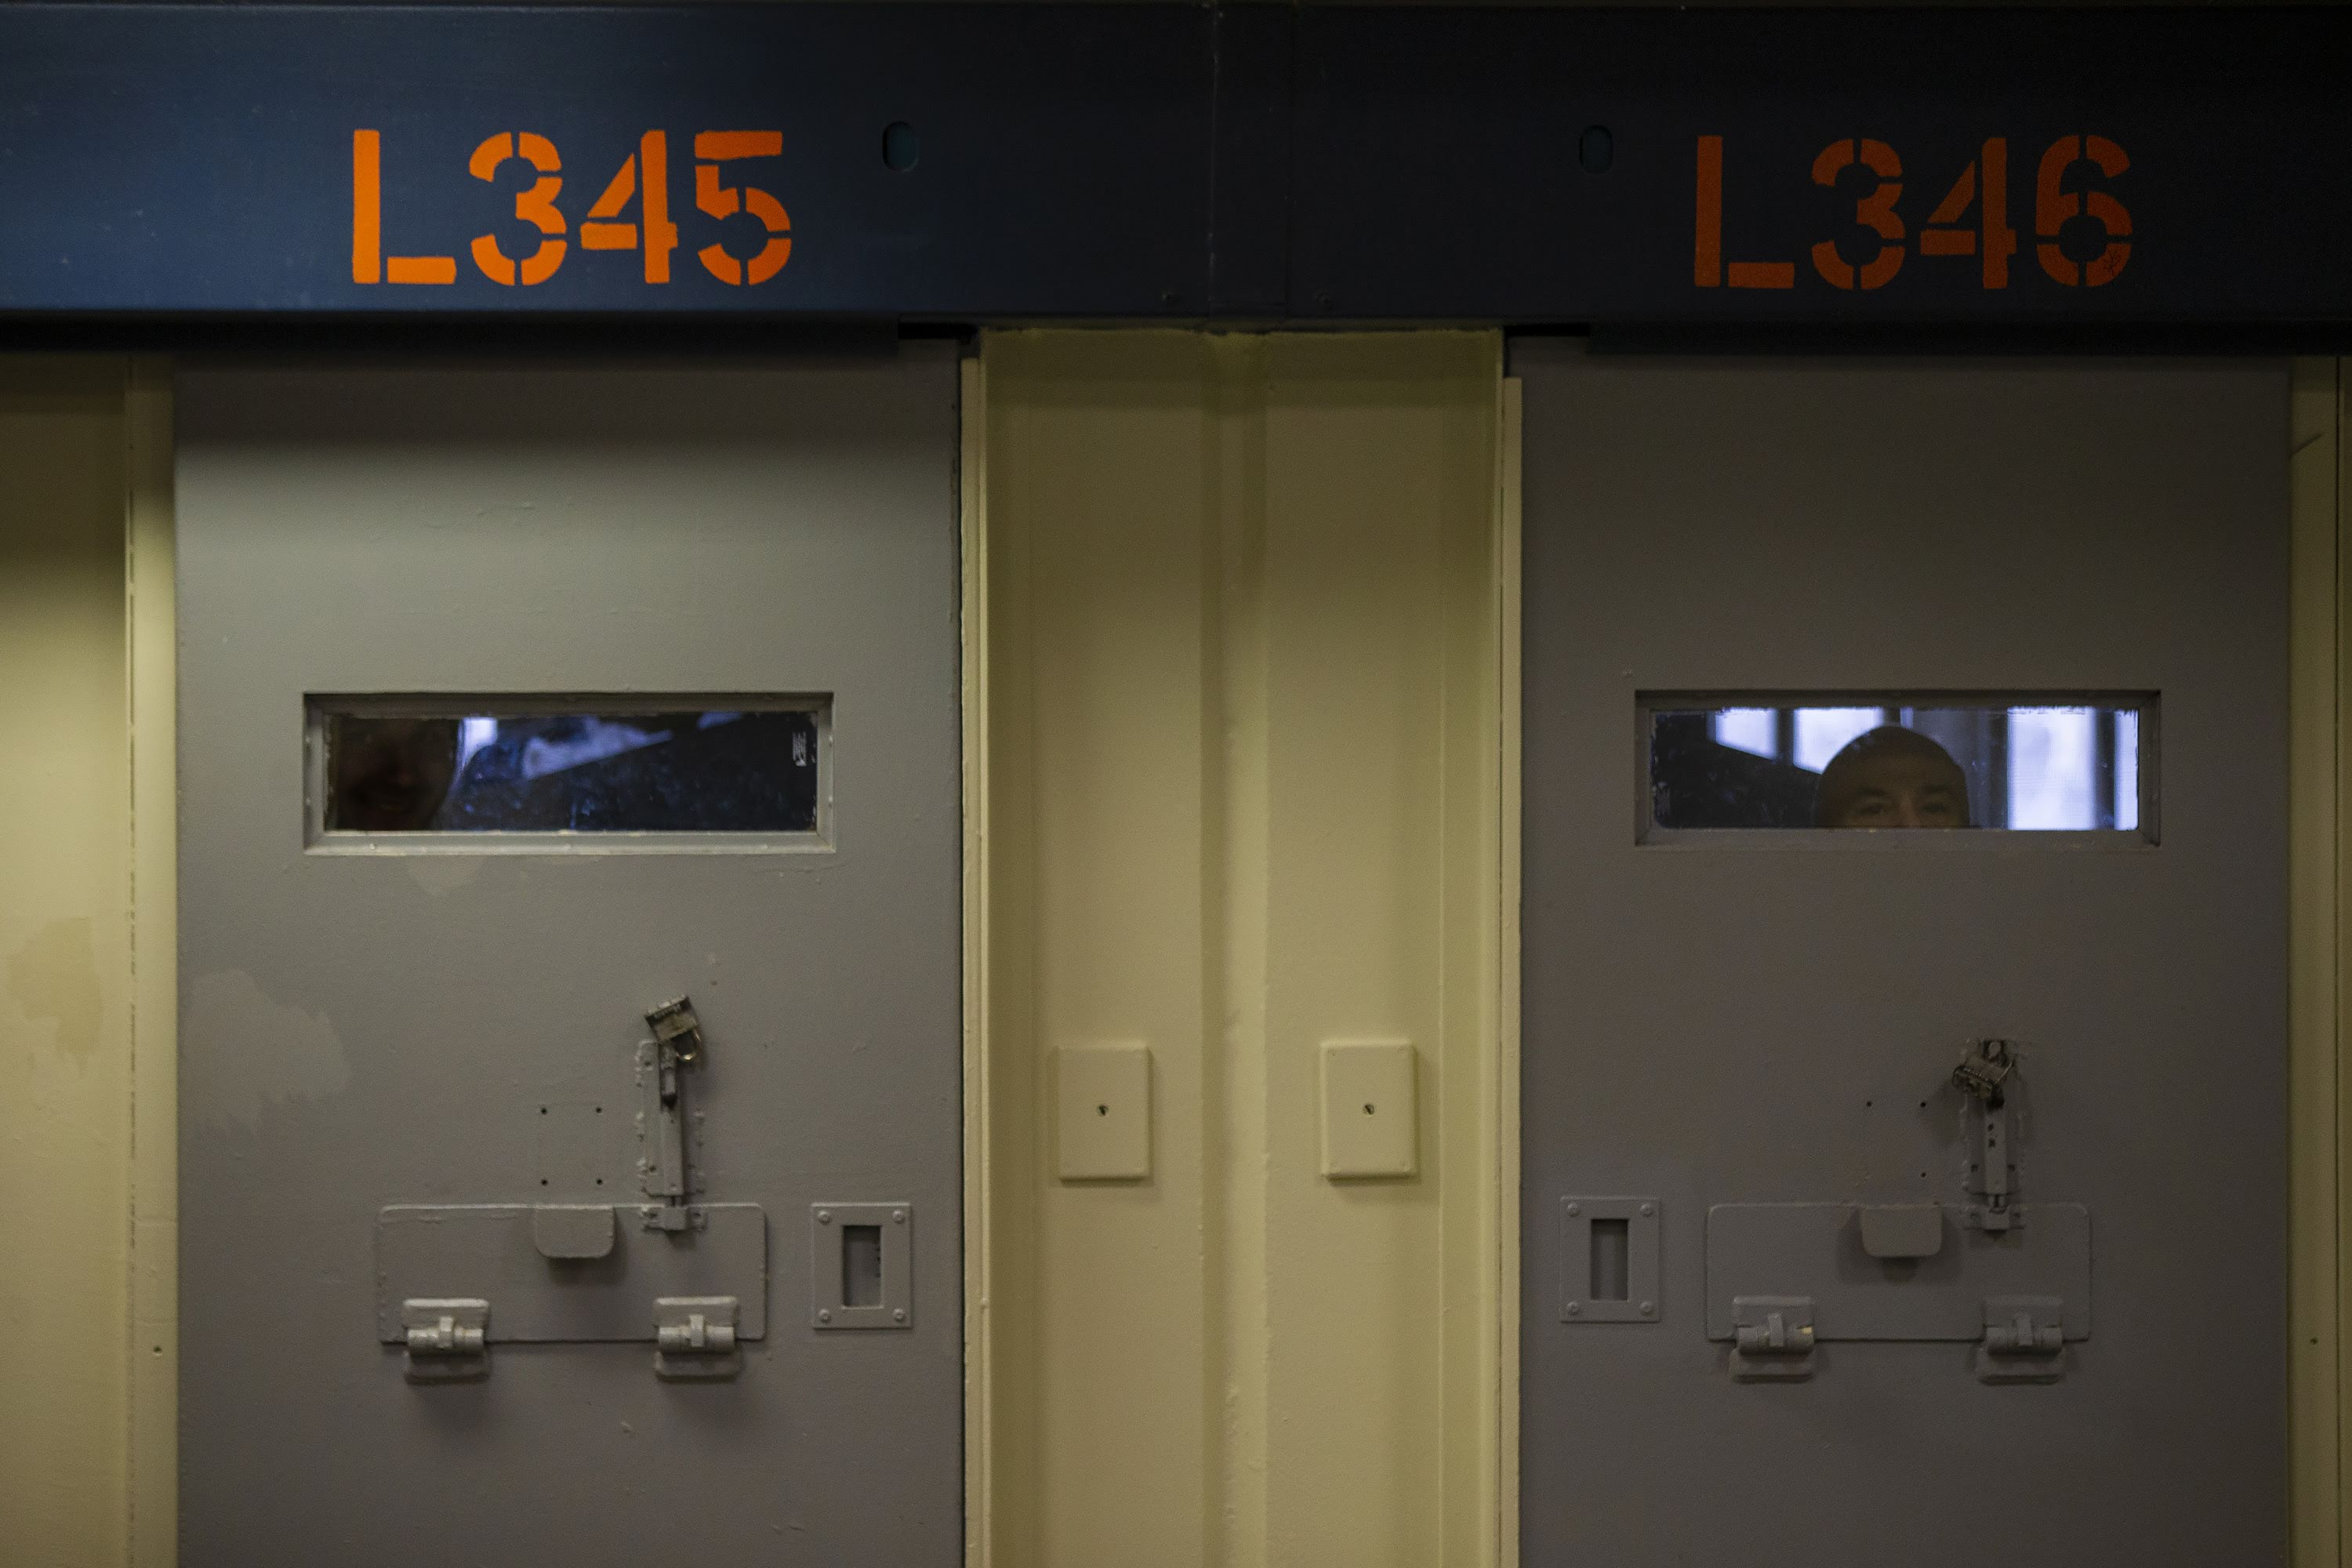 Inmates peer through the windows behind cell doors inside the Worcester County jail. (Jesse Costa/WBUR)